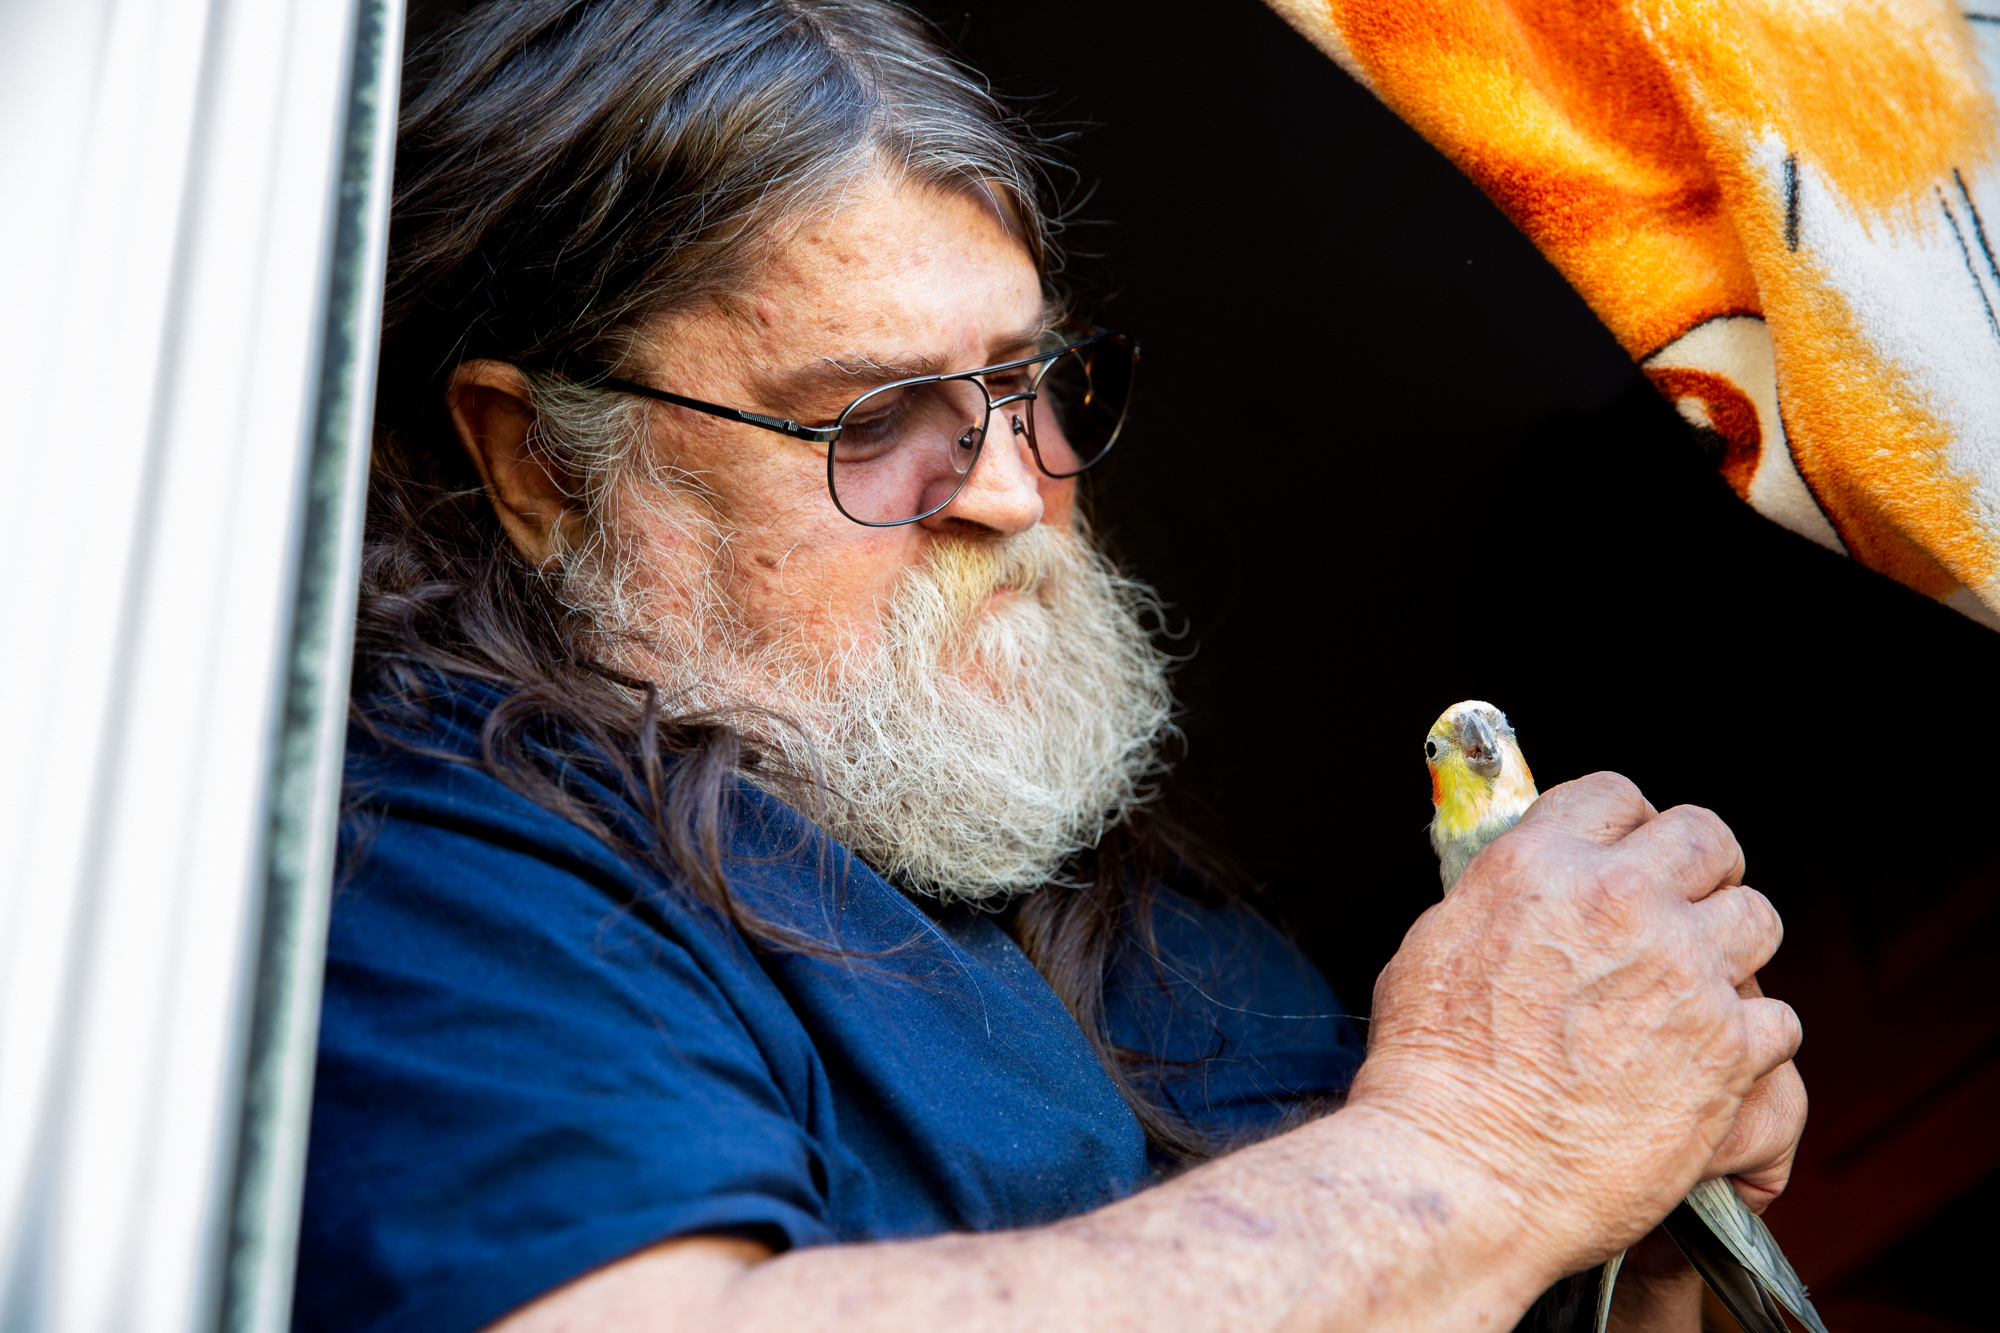 David Ramey - David Ramey, 65, lost his home of 30 years in Paradise, California, to the Camp Fire in 2018. He is living in a trailer in Chico, accompanied by his pet cockatiel, also named Chico because Ramey rescued him from a Chico parking lot 14 years ago. Ramey's son would like to return to Paradise, but Ramey says that he would be too stressed. (Allie Barton/News21)